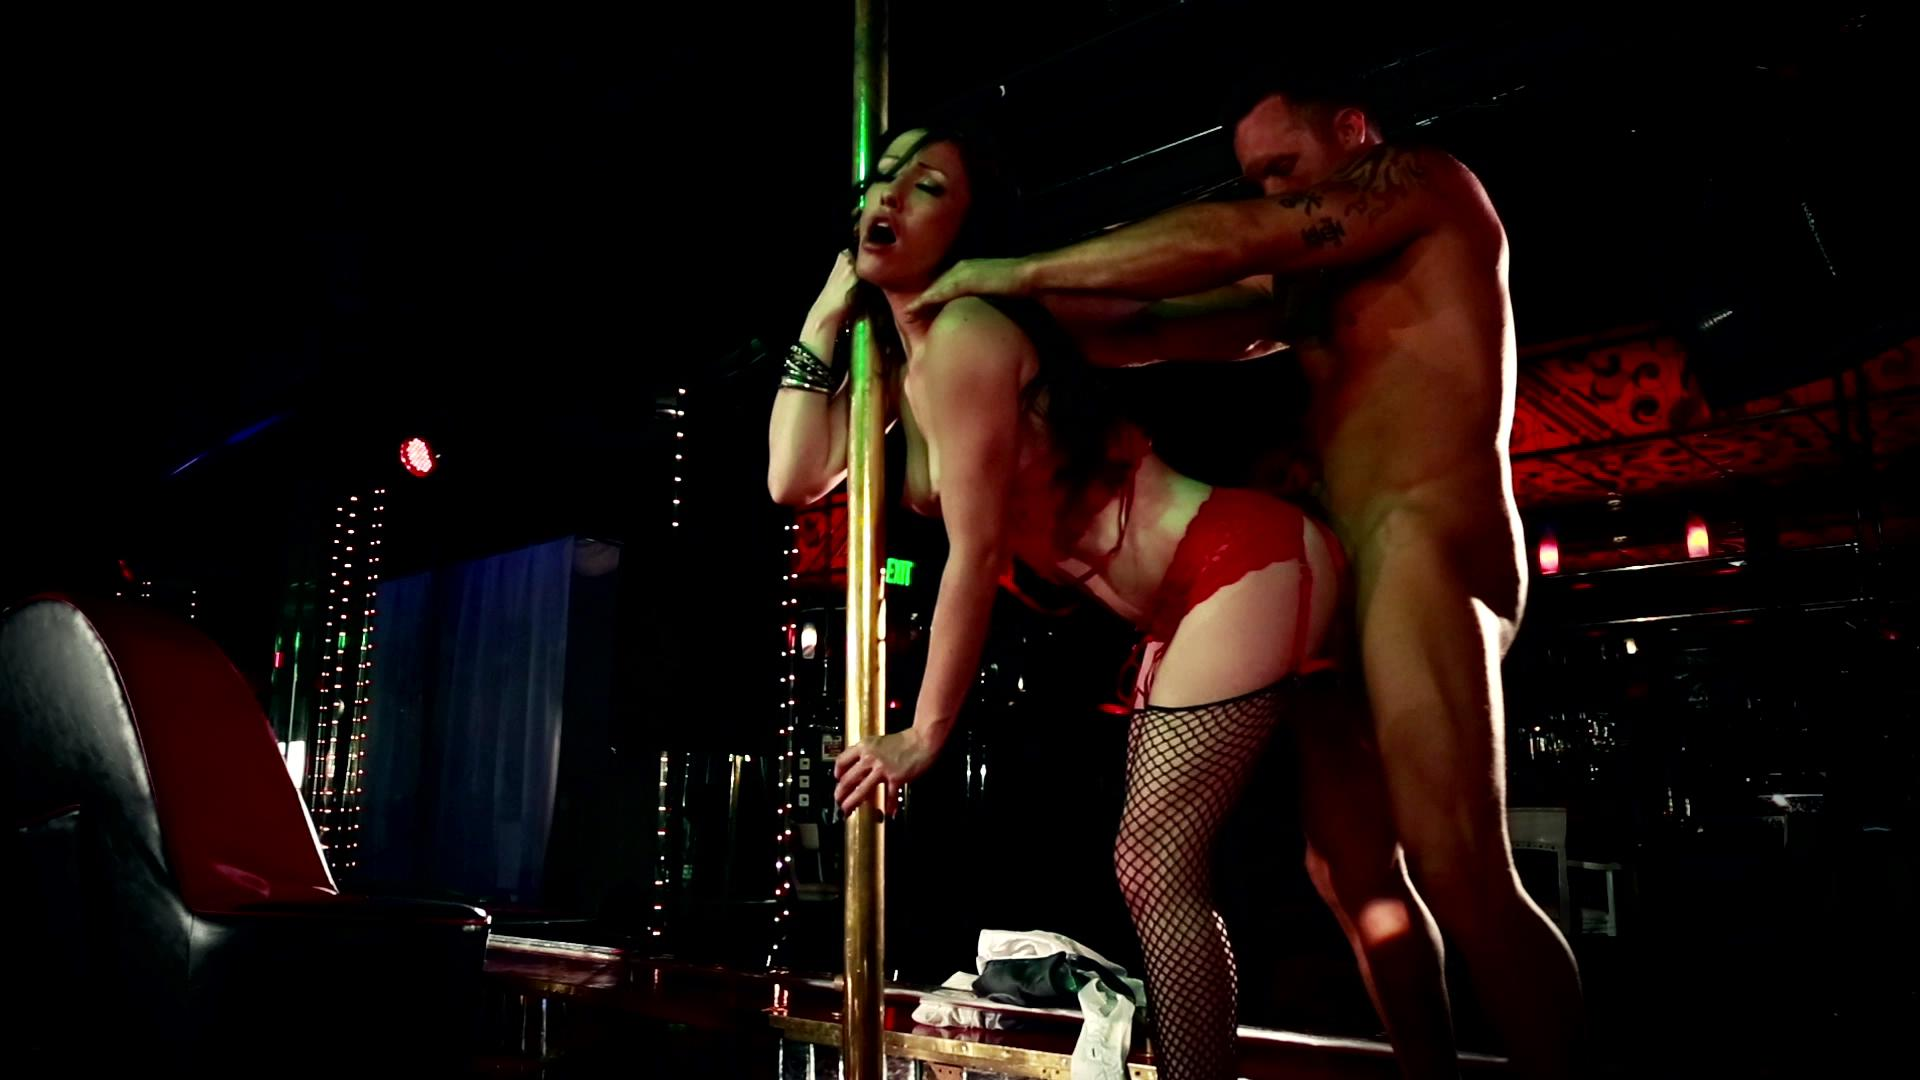 The Stripper xvideos163715